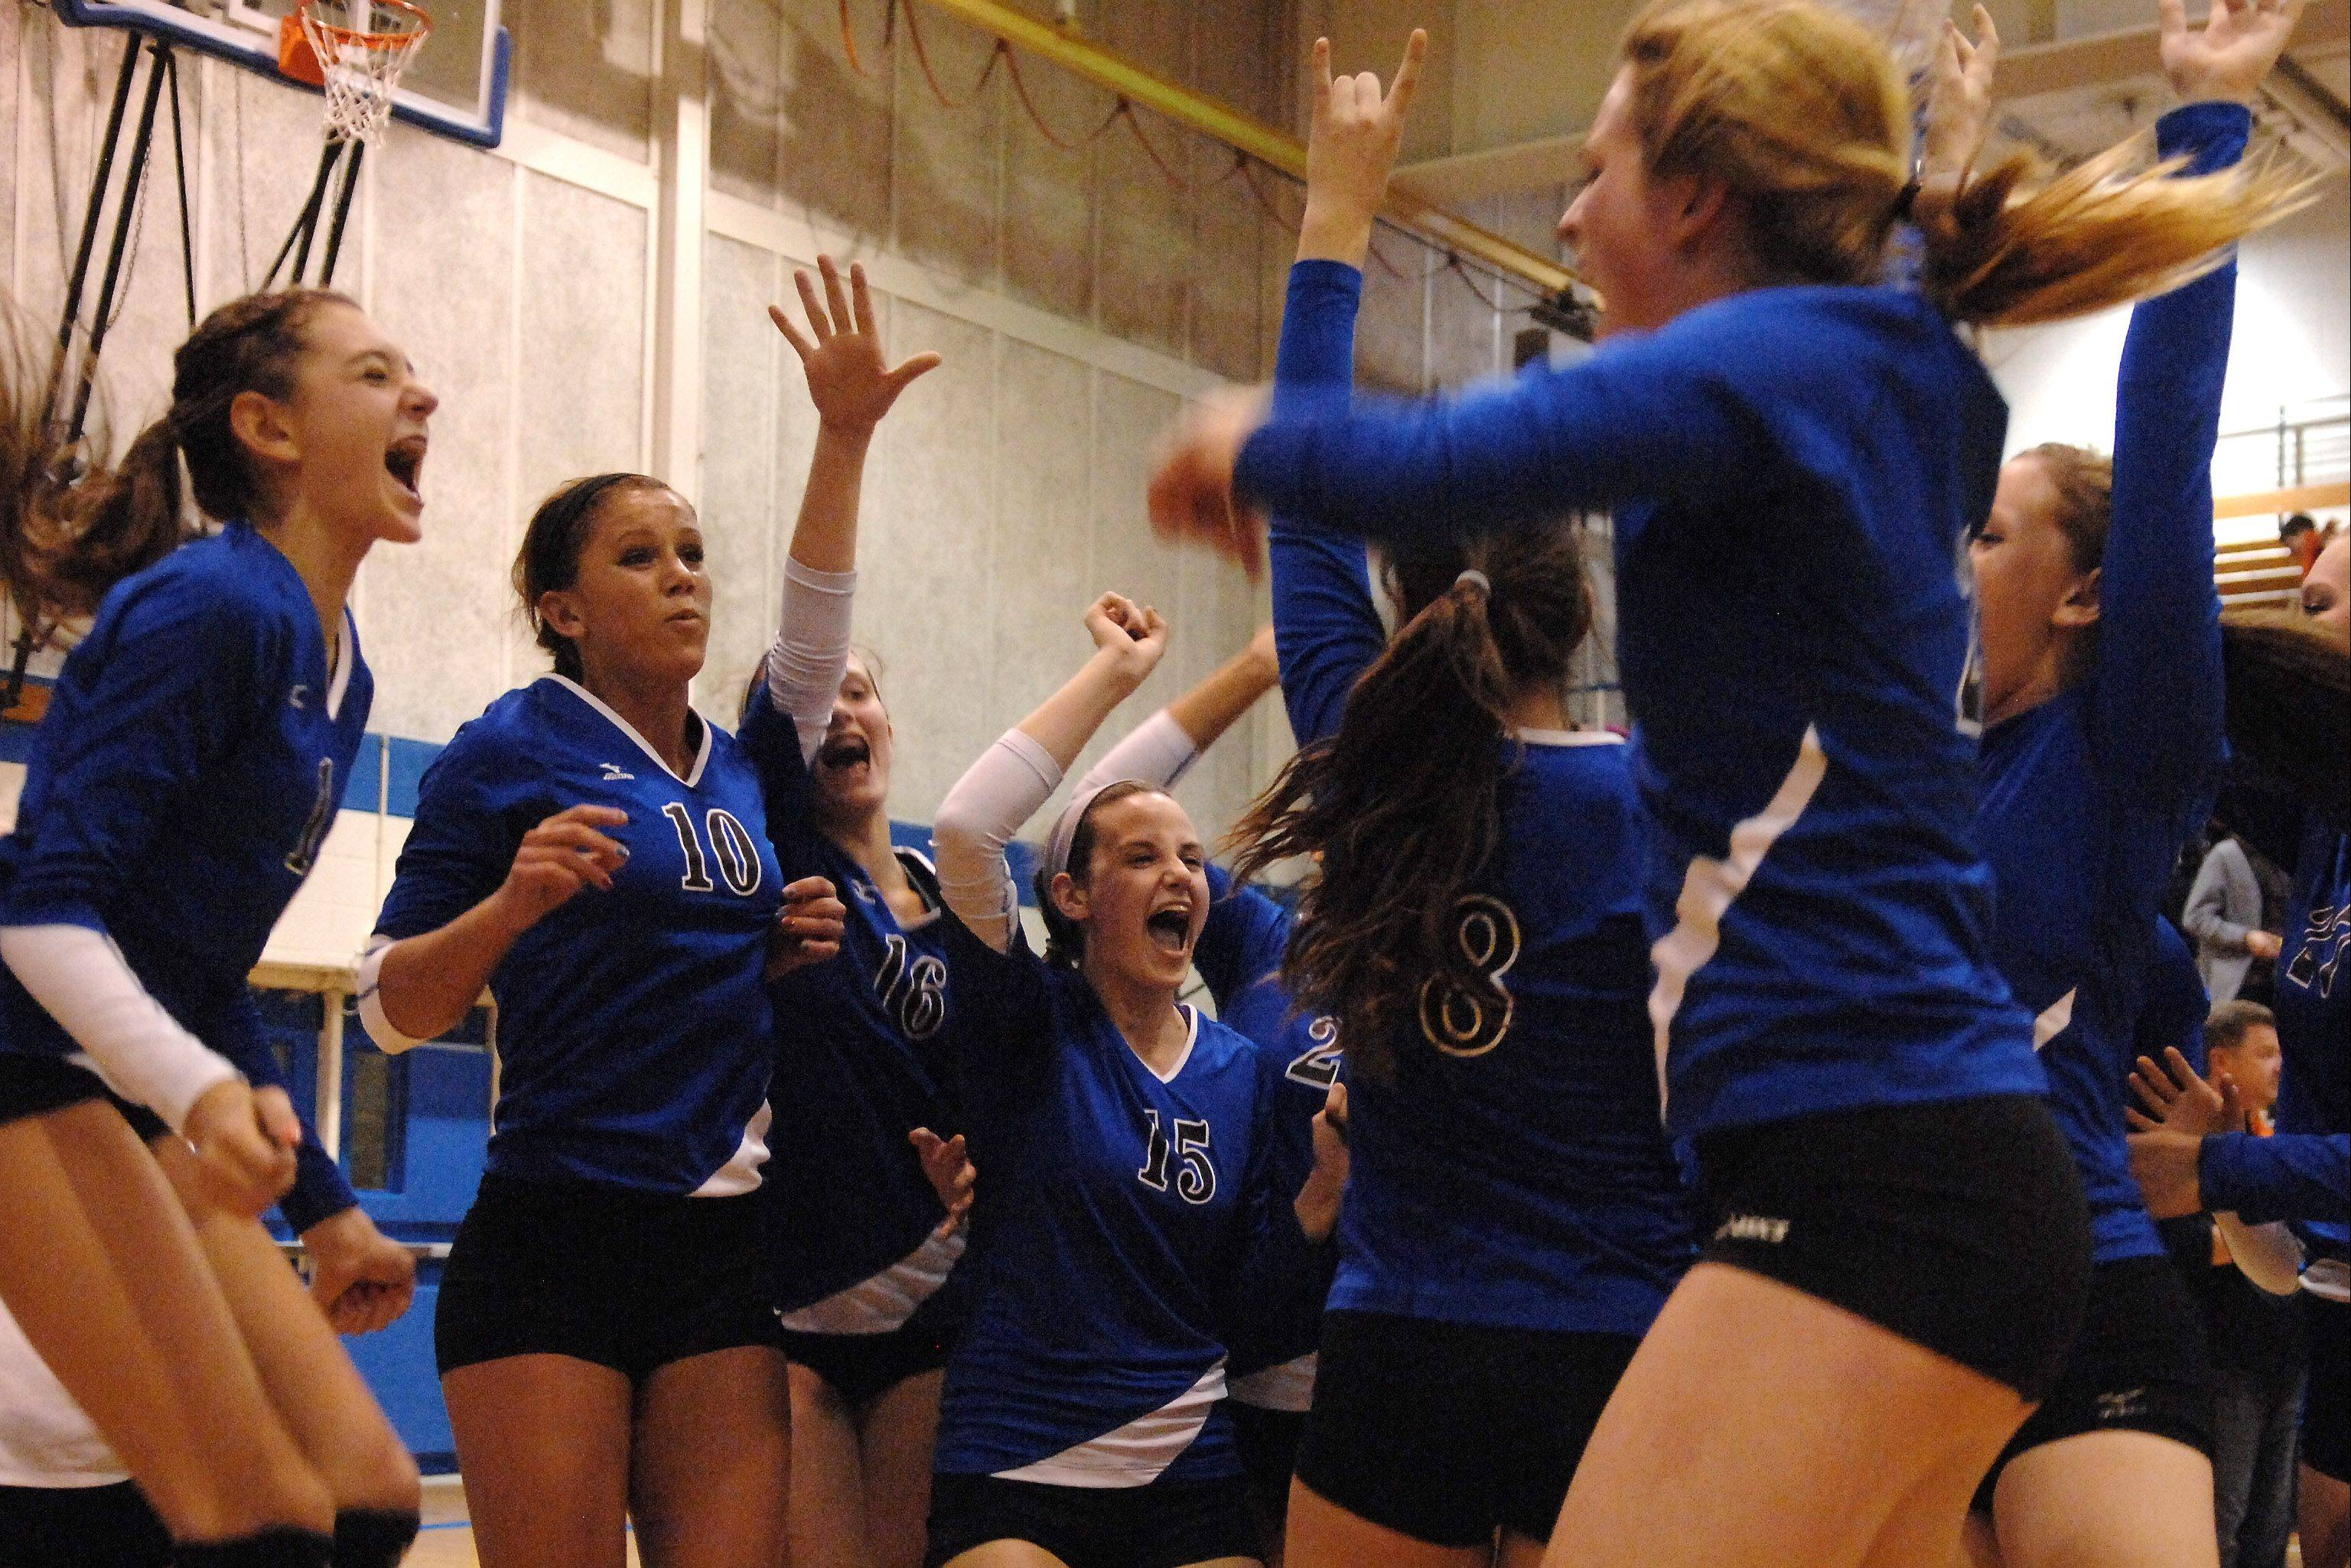 Geneva celebrates its victory over St. Charles East at Tuesday's sectional semifinals at Larkin.